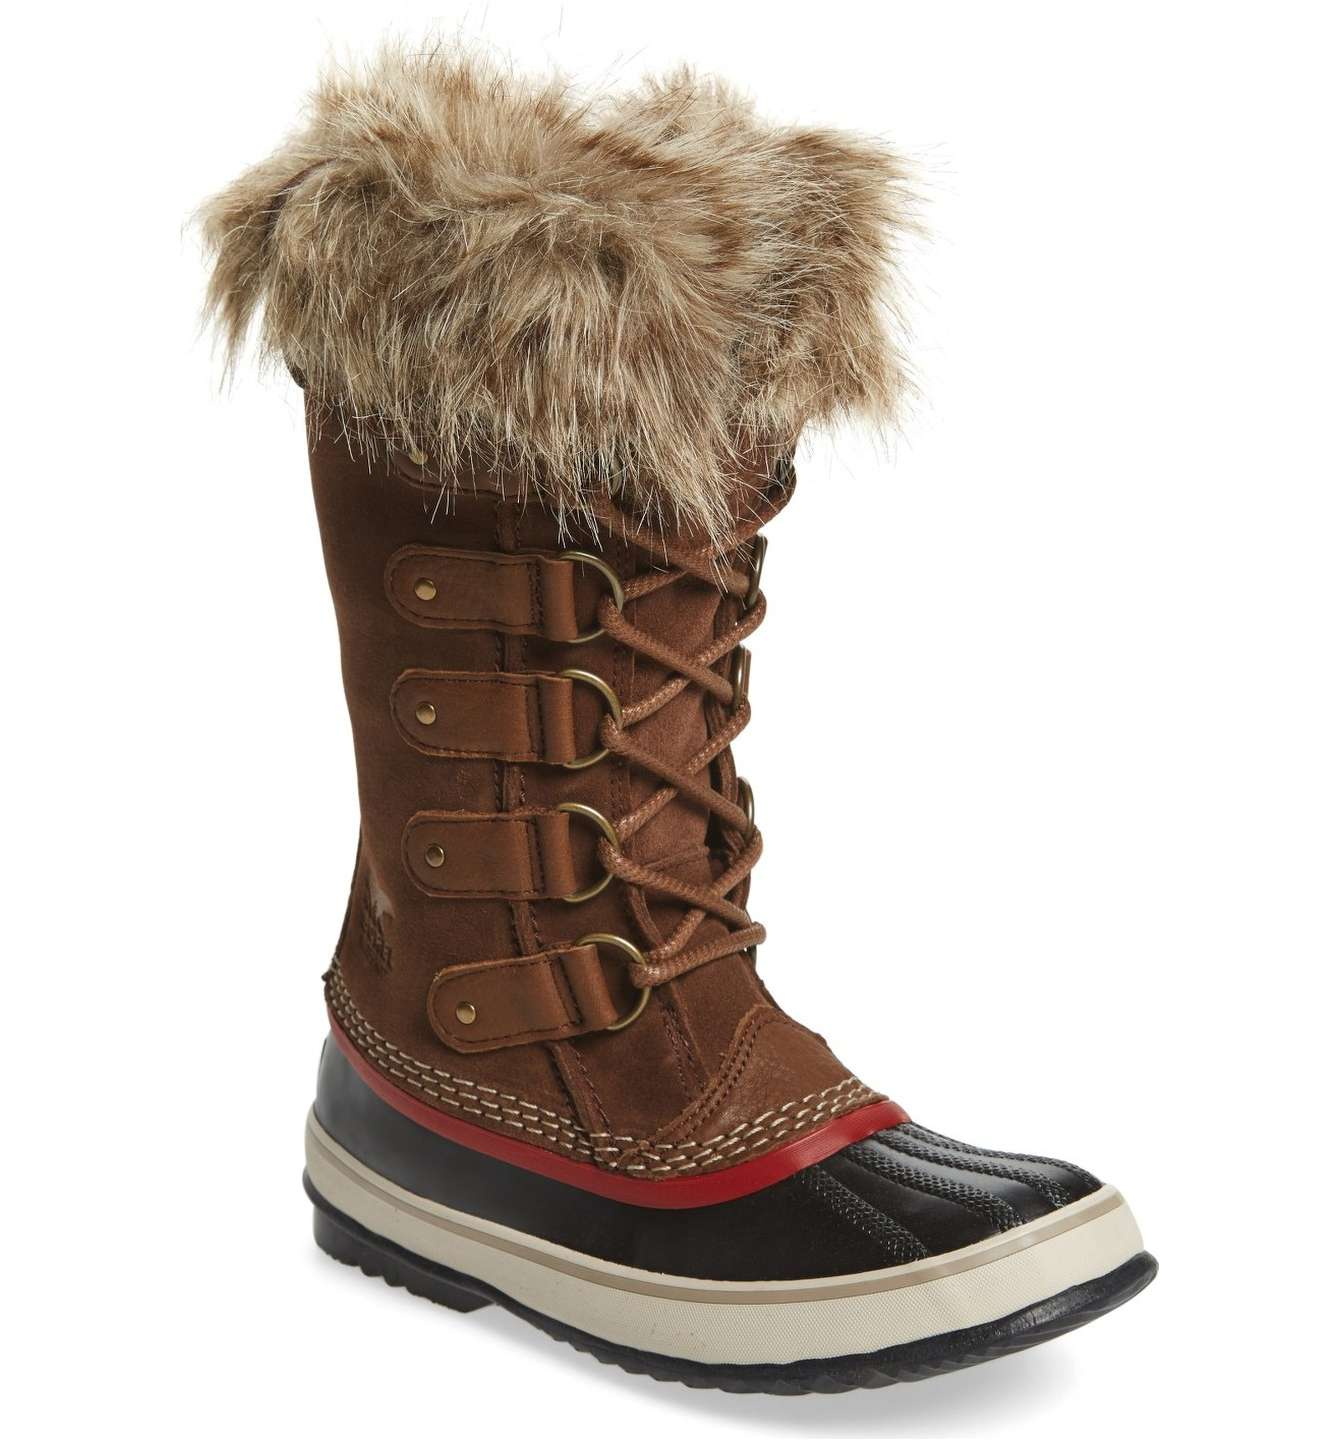 What To Buy For A Chicago Winter